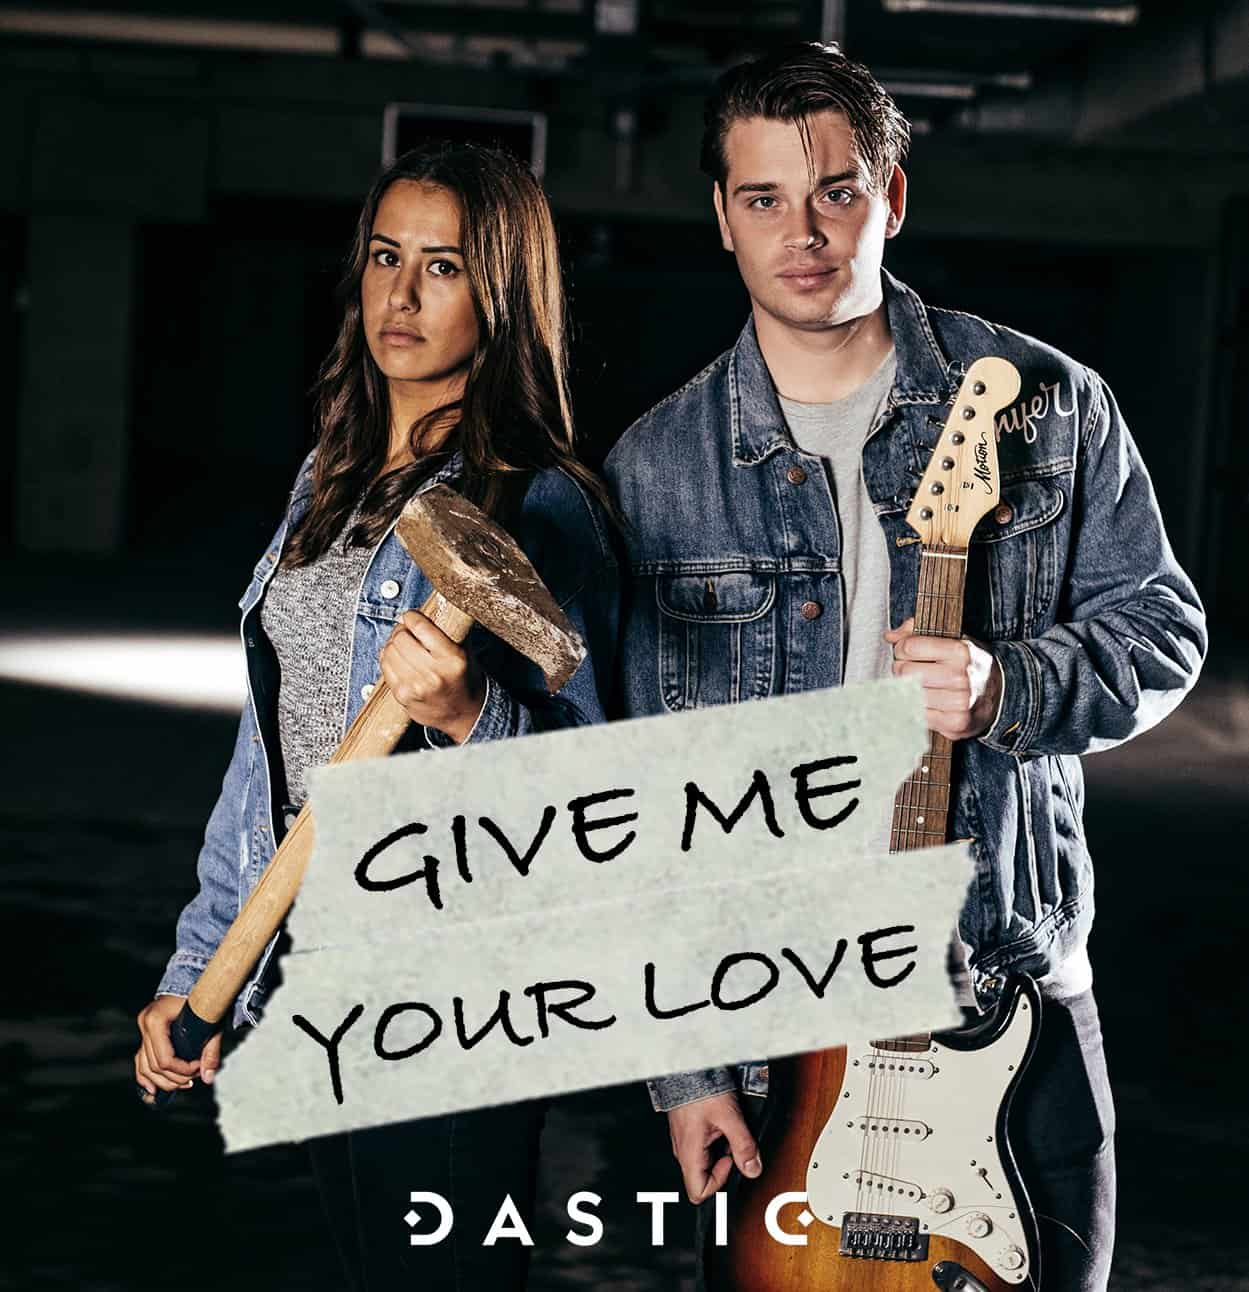 Dastic presents new single 'Give Me Your Love' out now on Spinnin' Records